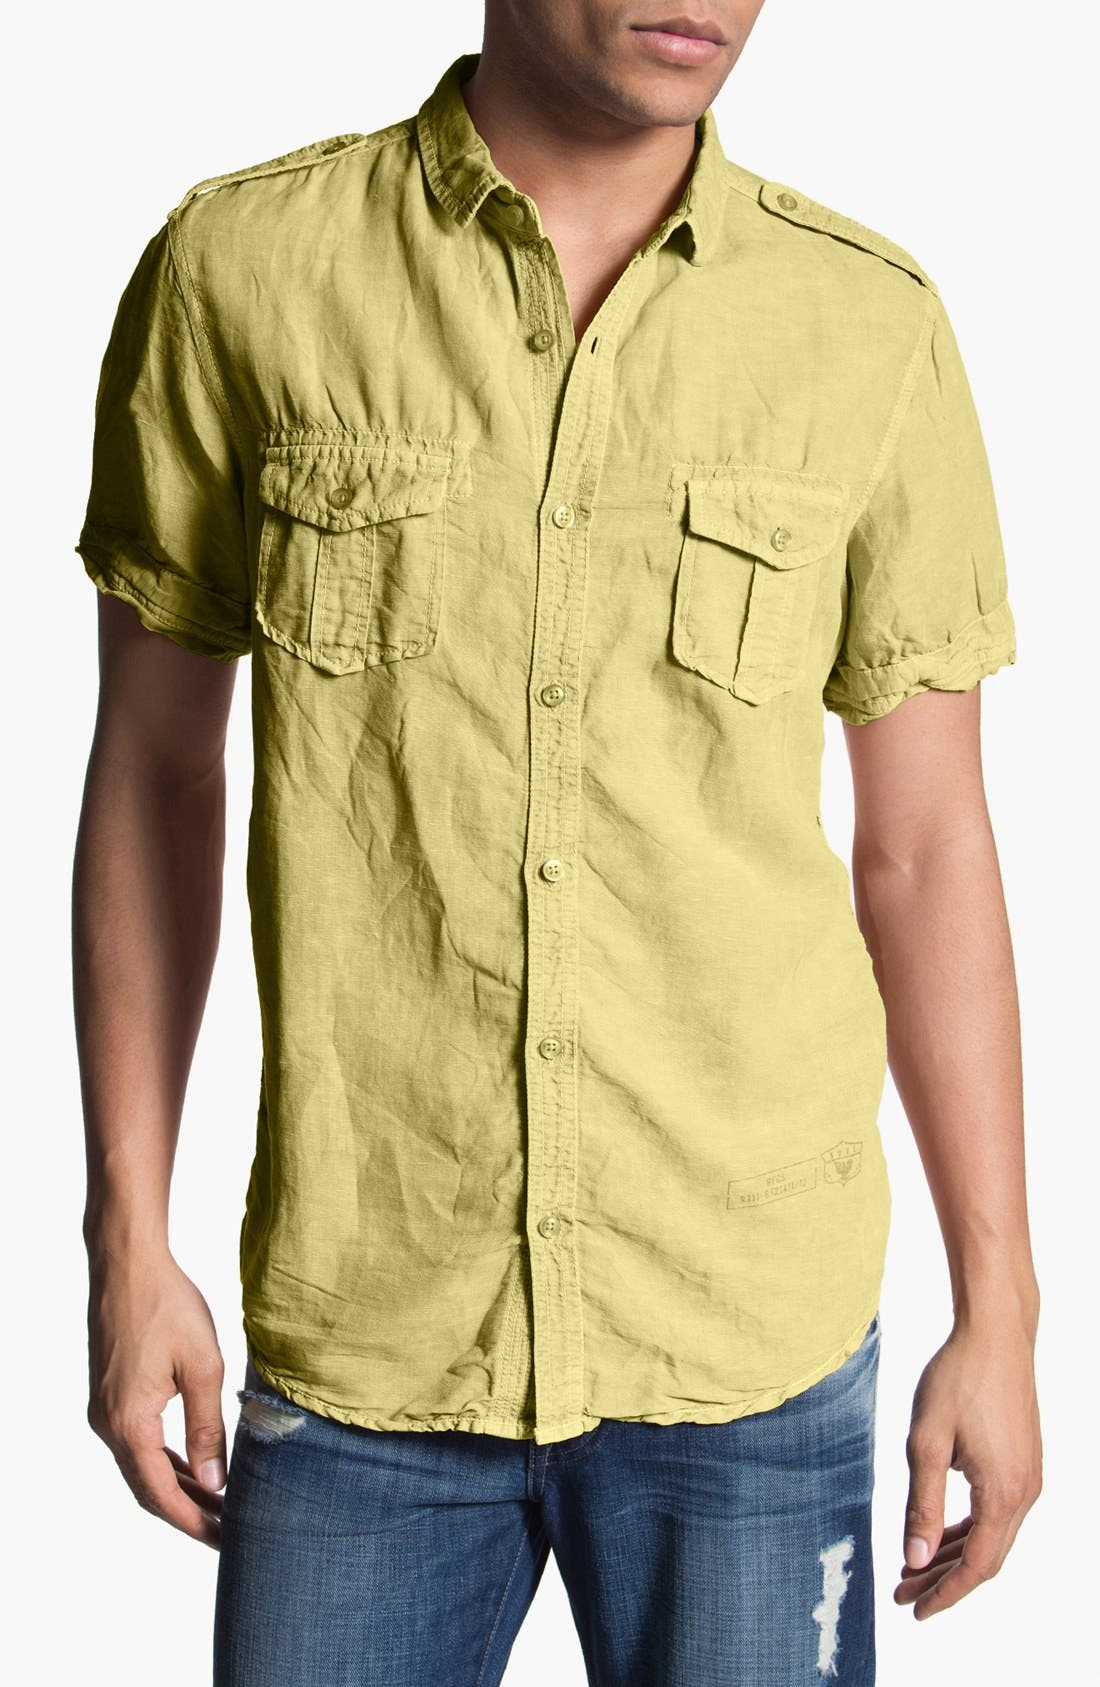 Alternate Image 1 Selected - Nove 'Miami' Short Sleeve Linen Blend Shirt